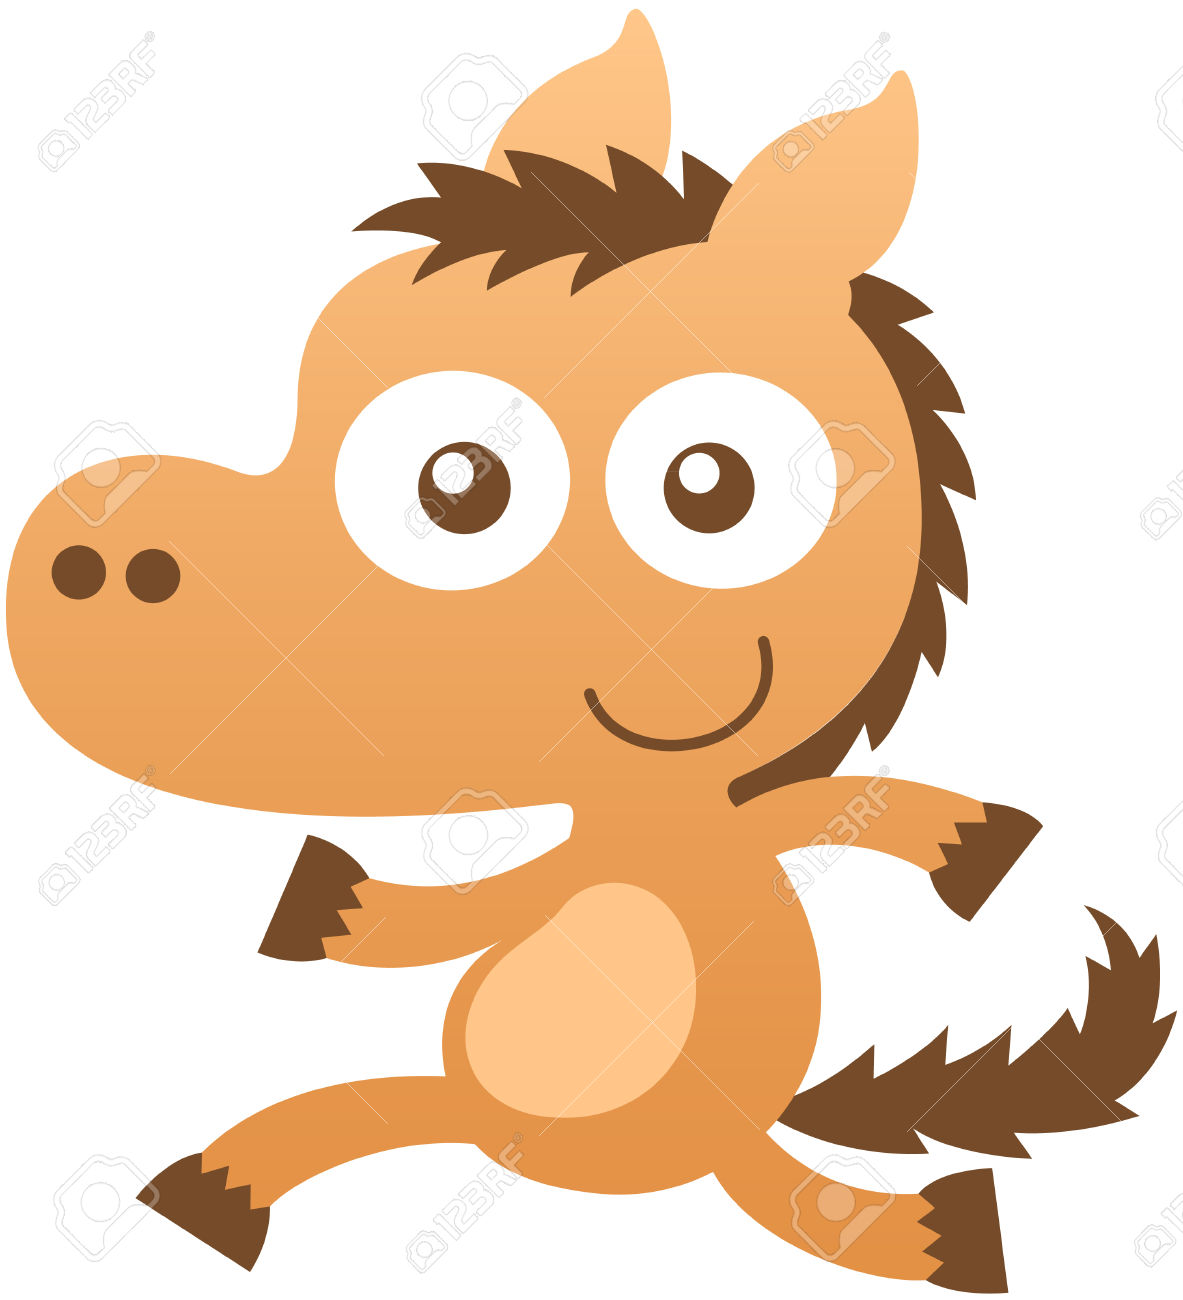 Lovely Baby Horse With Light Brown Fur, Pointy Ears, Bulging.